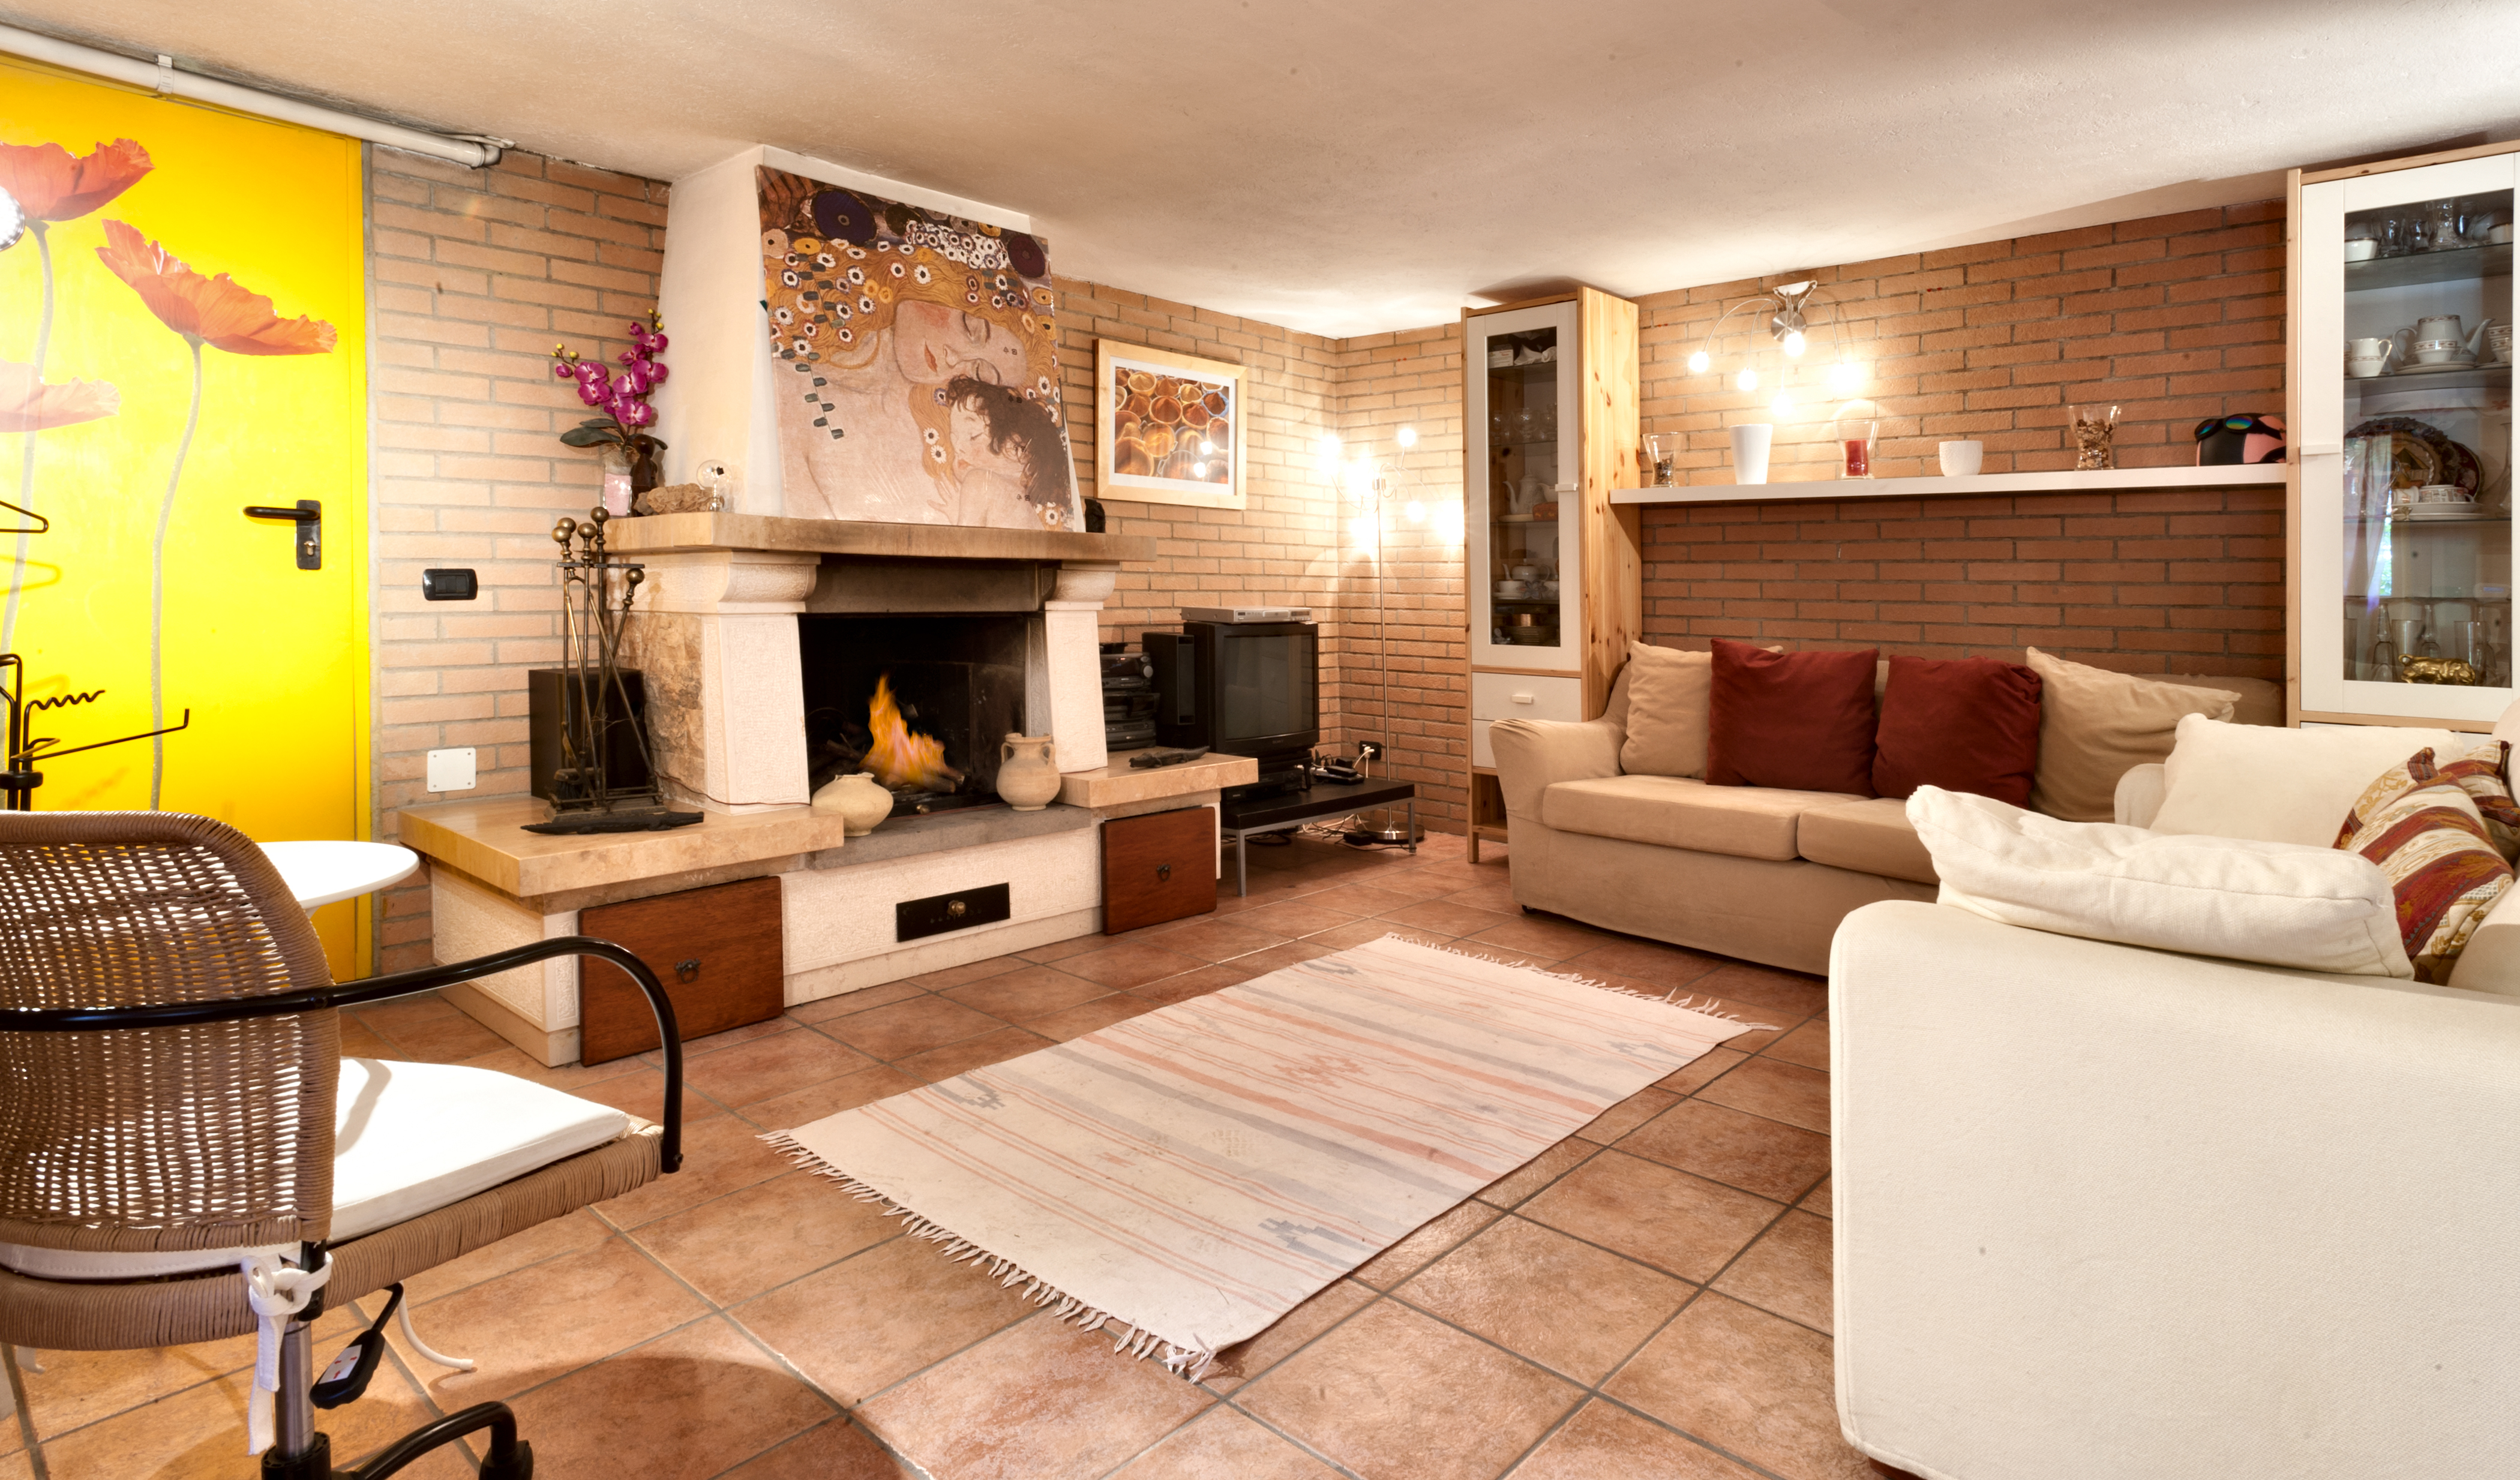 A Modo Mio Melzo cozy ground floor in countryhouse - lofts for rent in